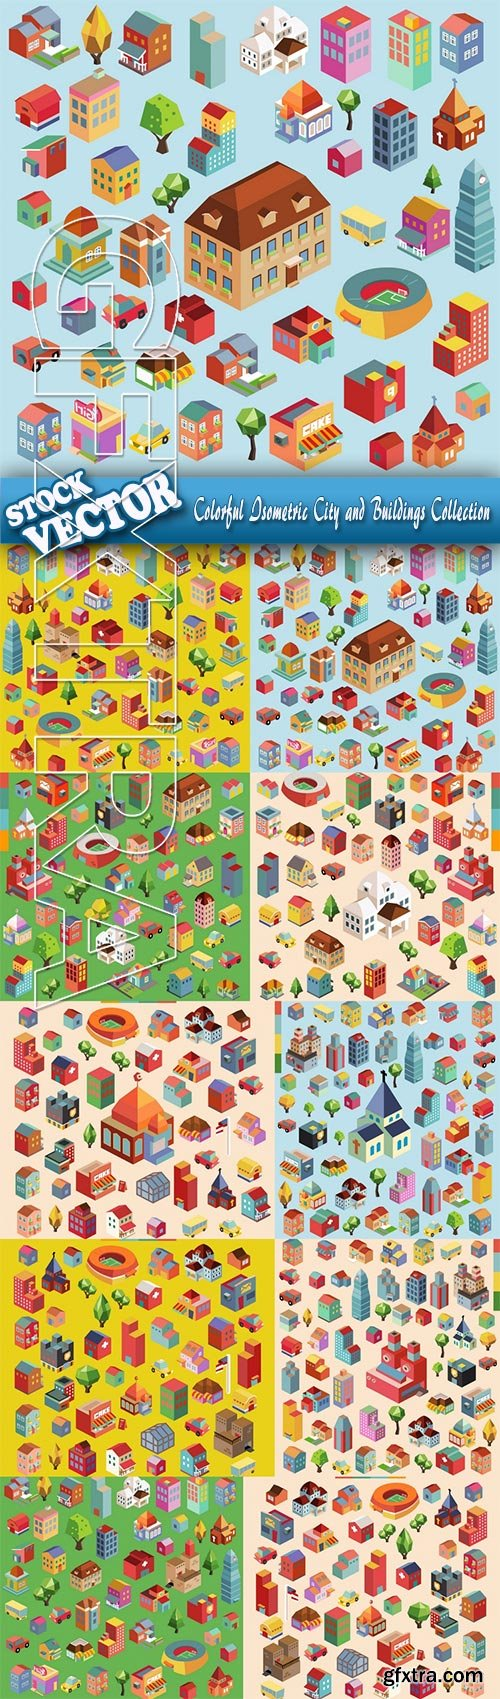 Stock Vector - Colorful Isometric City and Buildings Collection